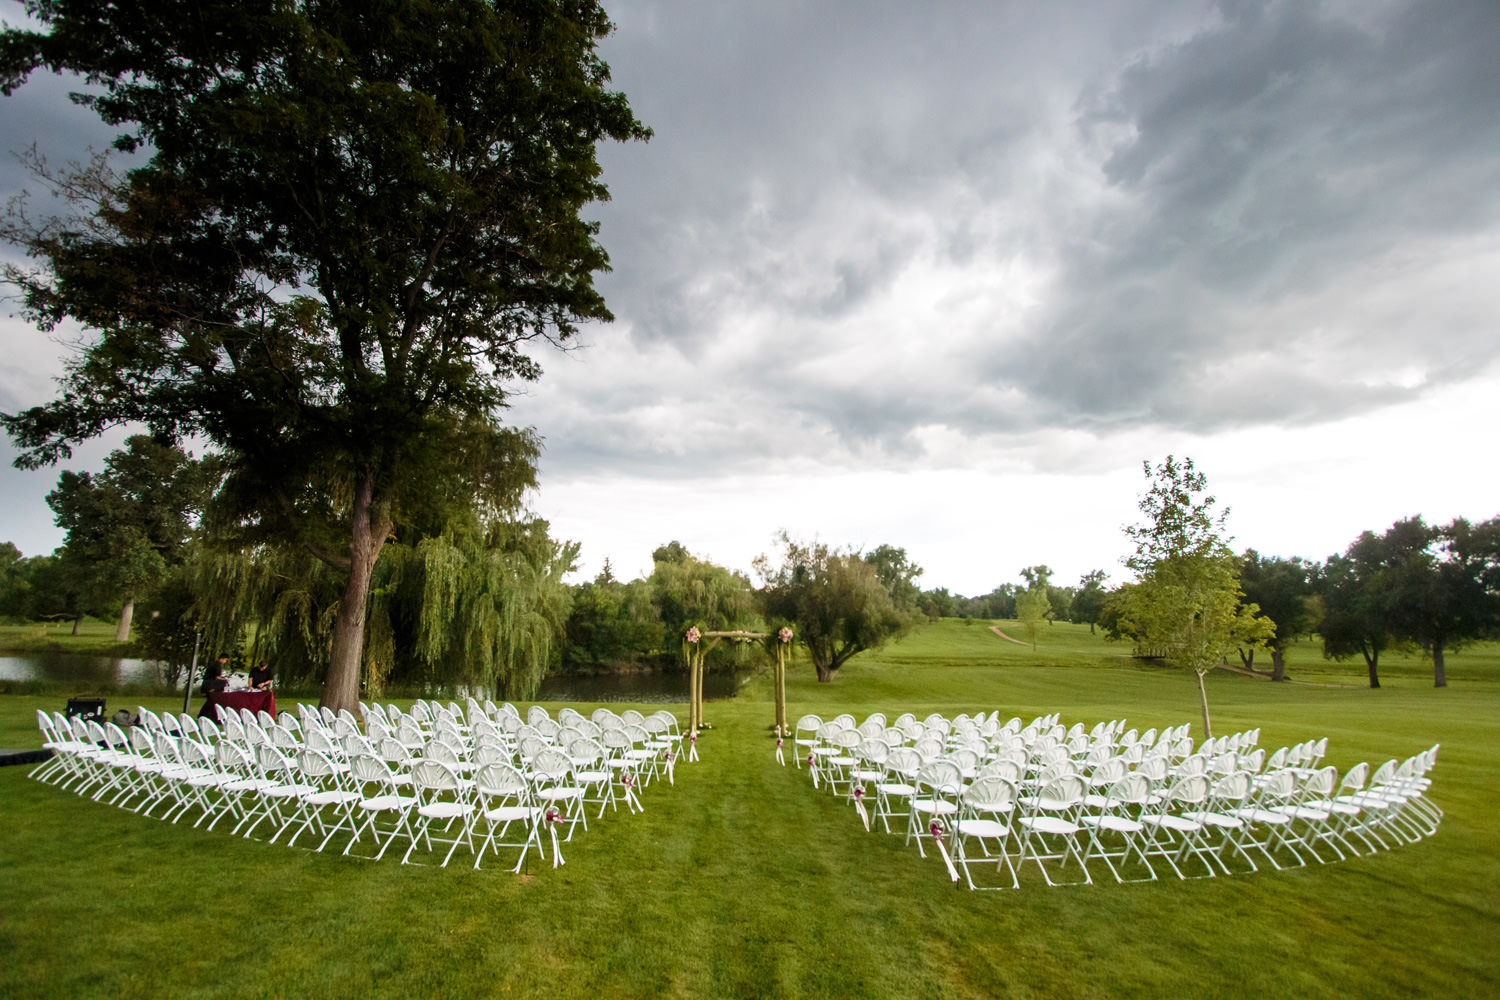 lakewood-country-club-wedding-photographer-tomKphoto-007.jpg